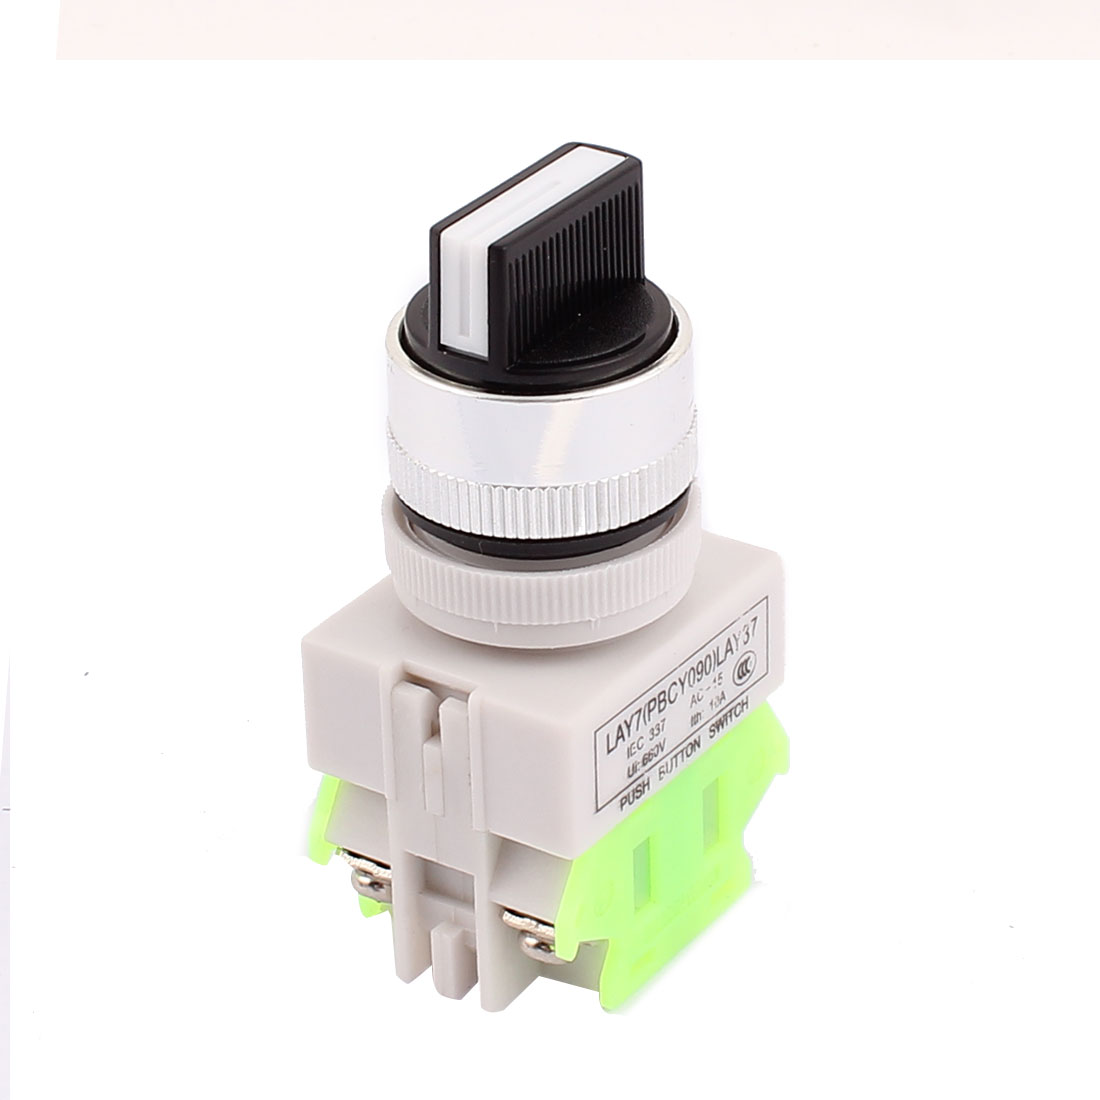 Rotatable AC 600V 10A Circuit Controlling 3 Position Latching Push Button Switch